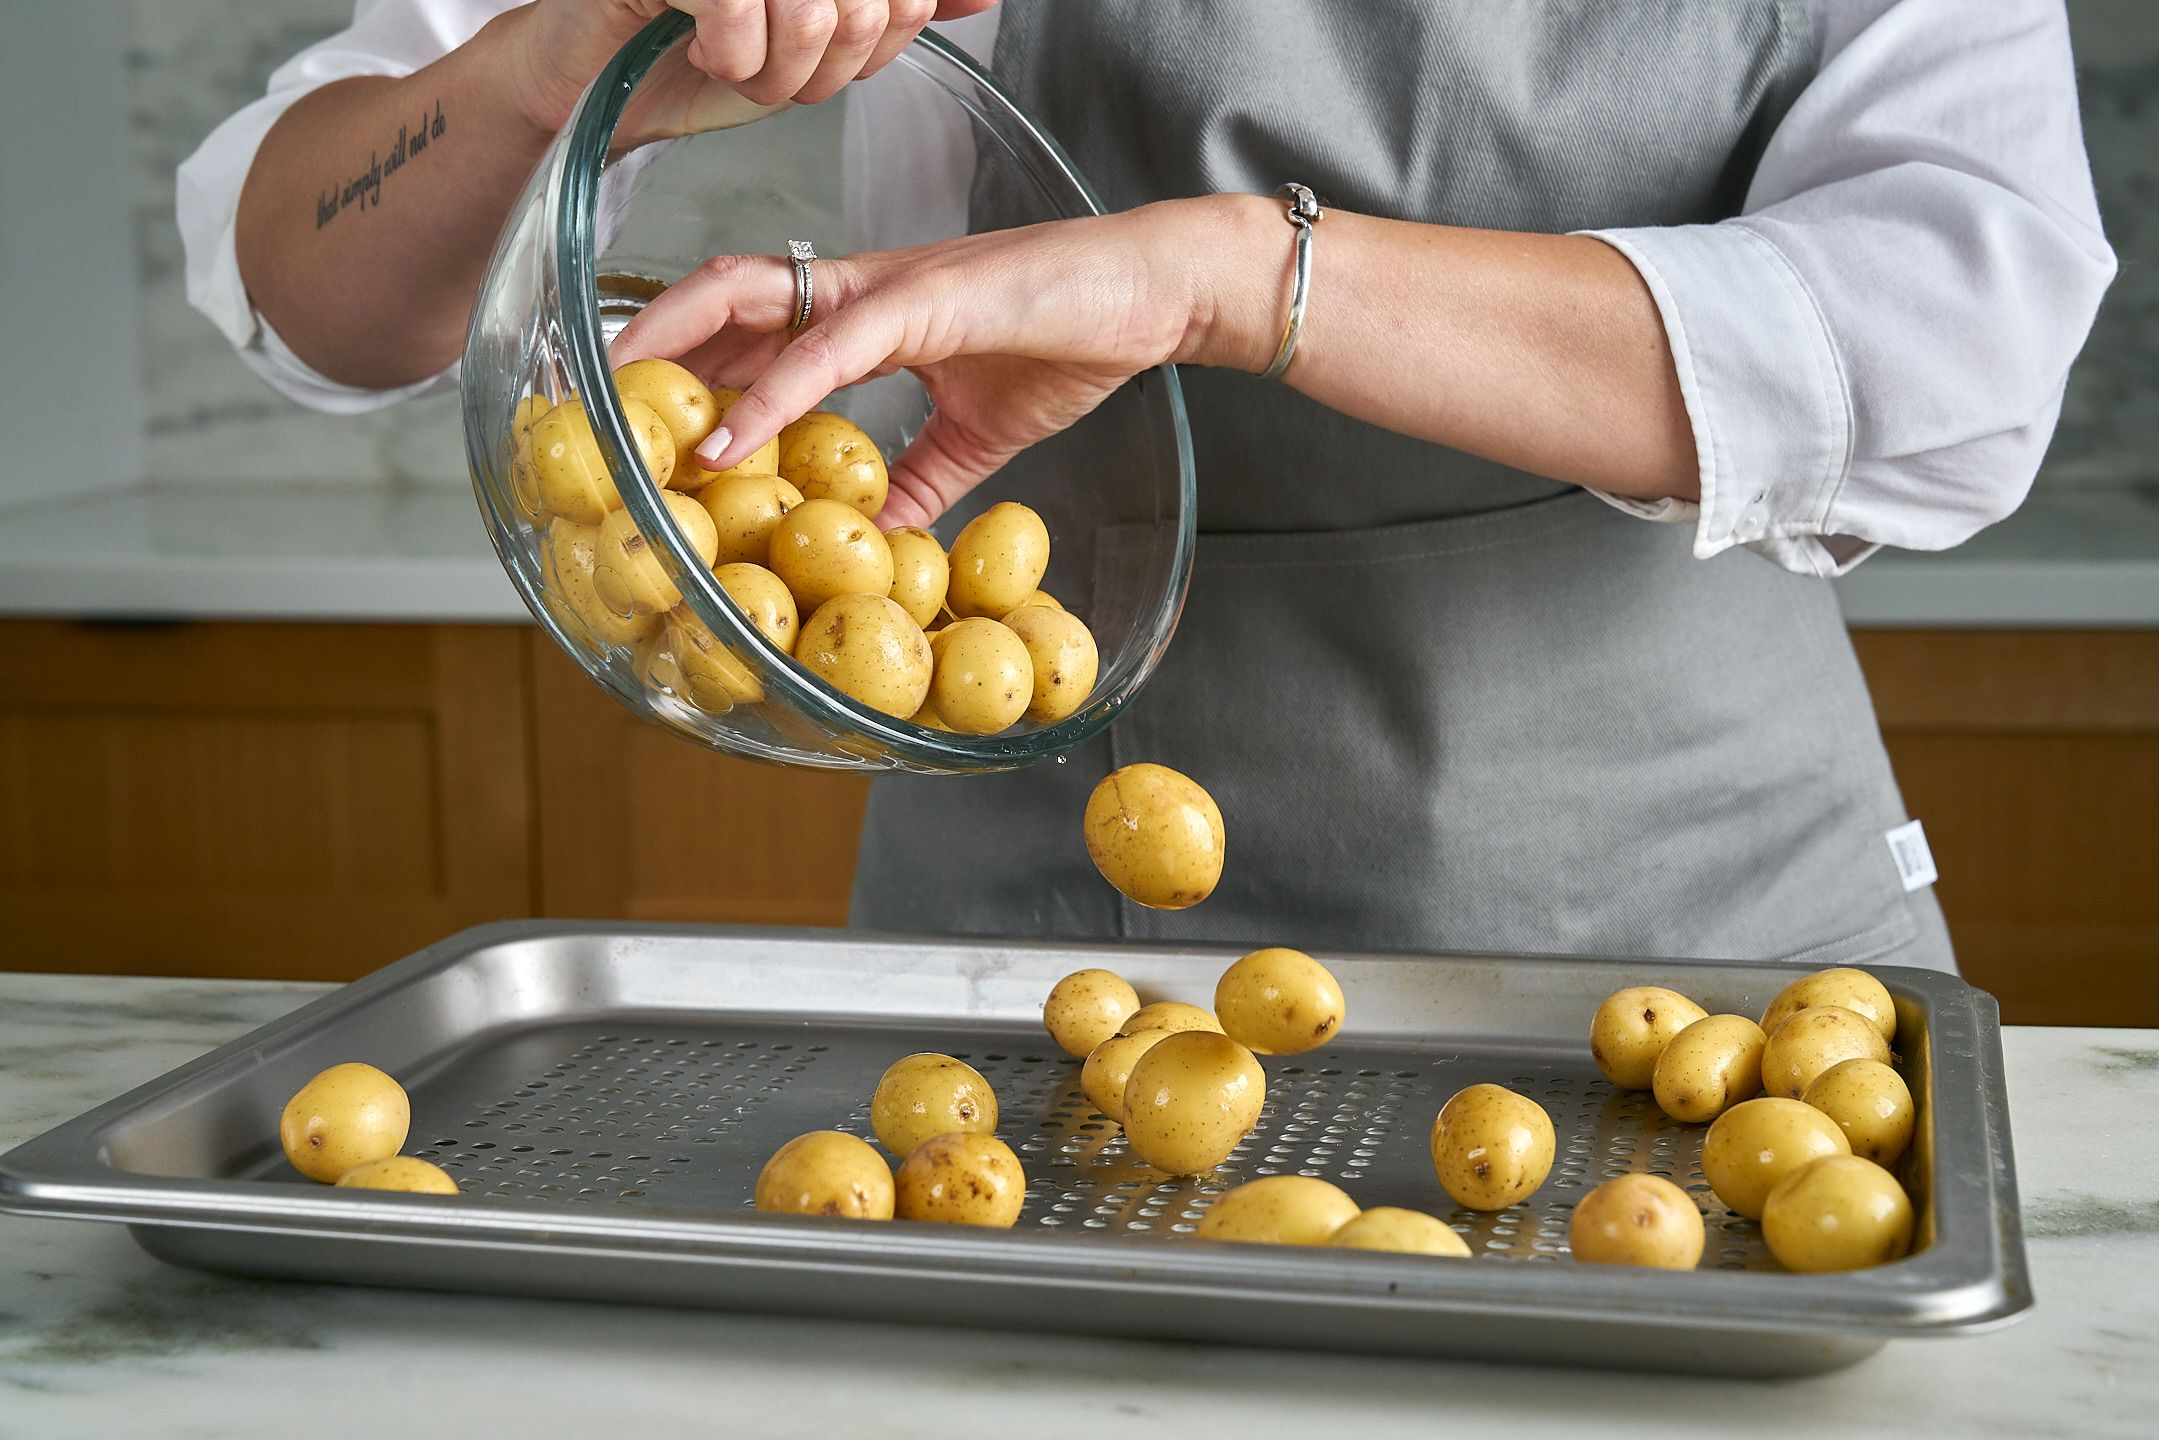 Place potatoes on Perforated Pan.